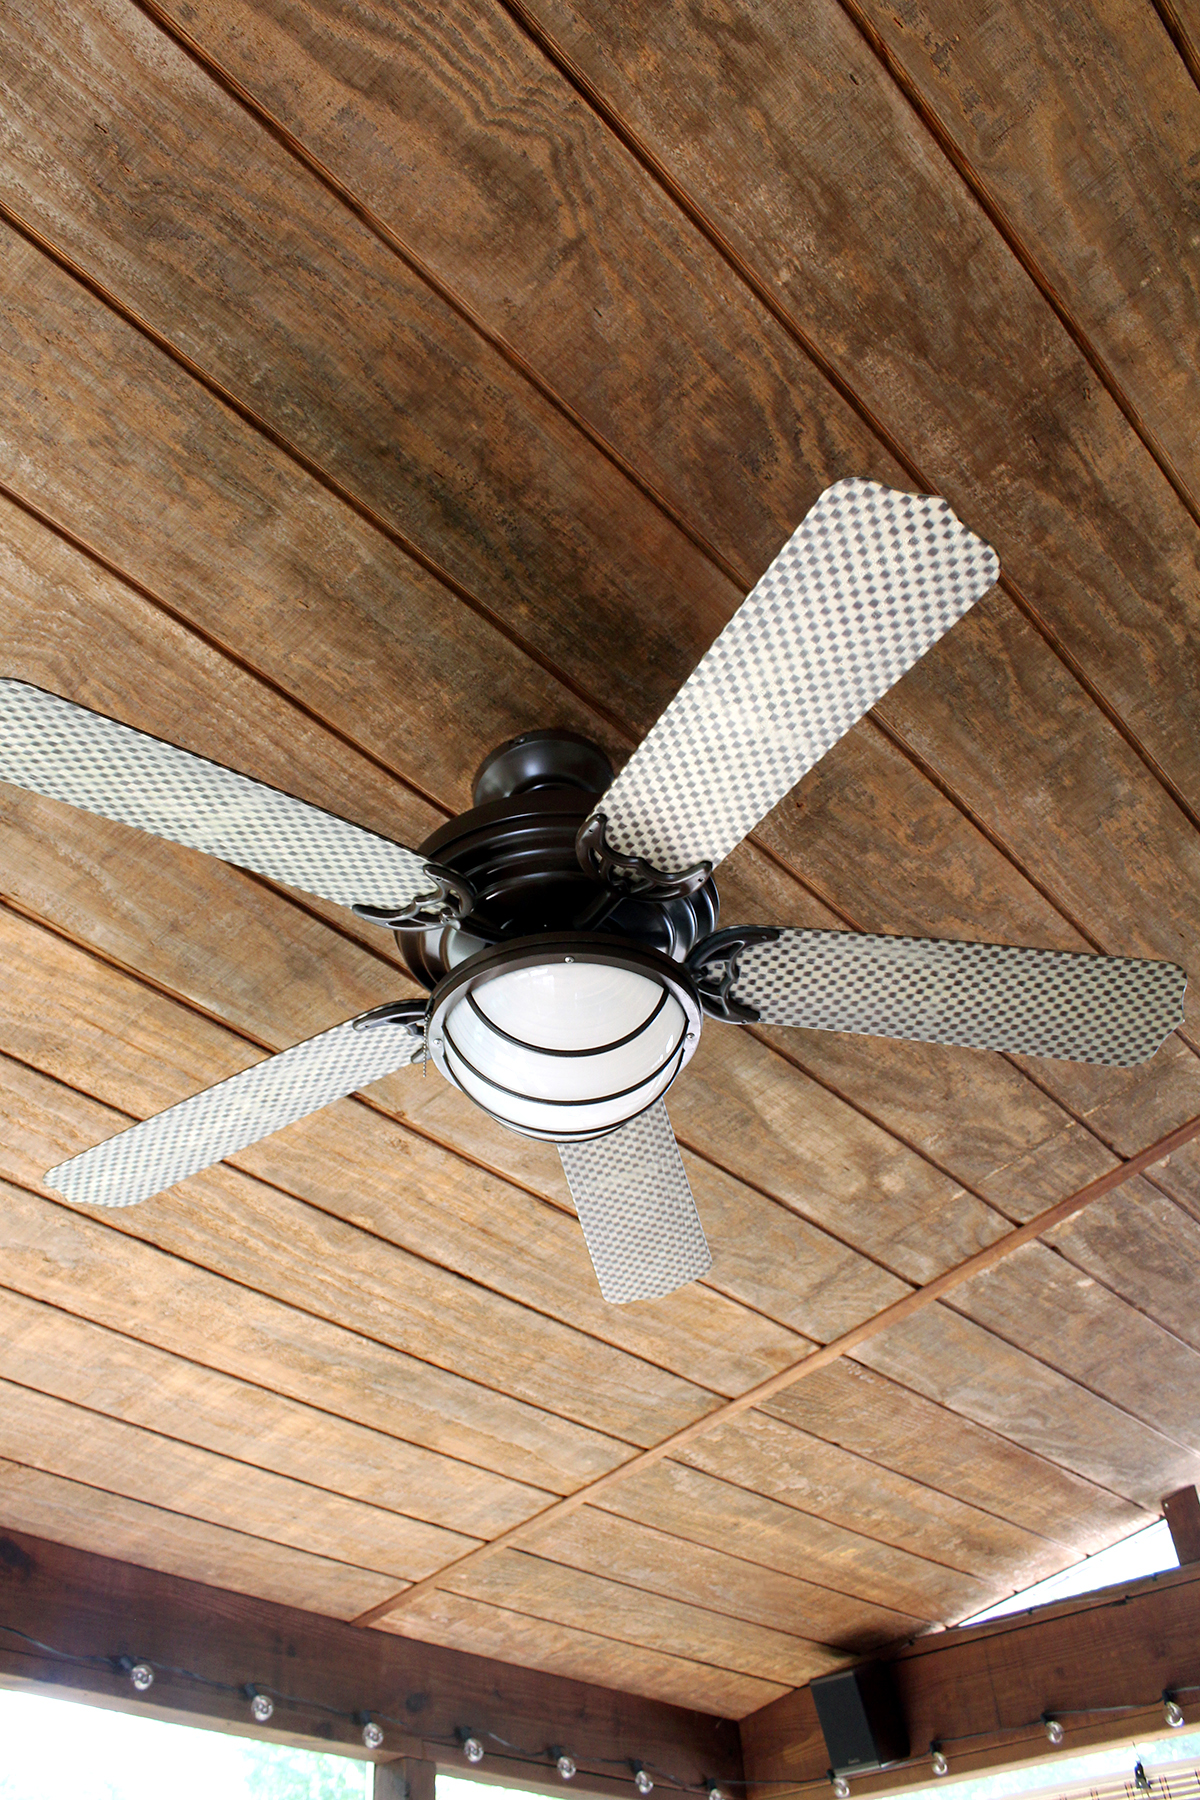 How to paint a ceiling fan using spray paint and a rug pad #DIY #HomeDesign #CeilingFan #Upcycle